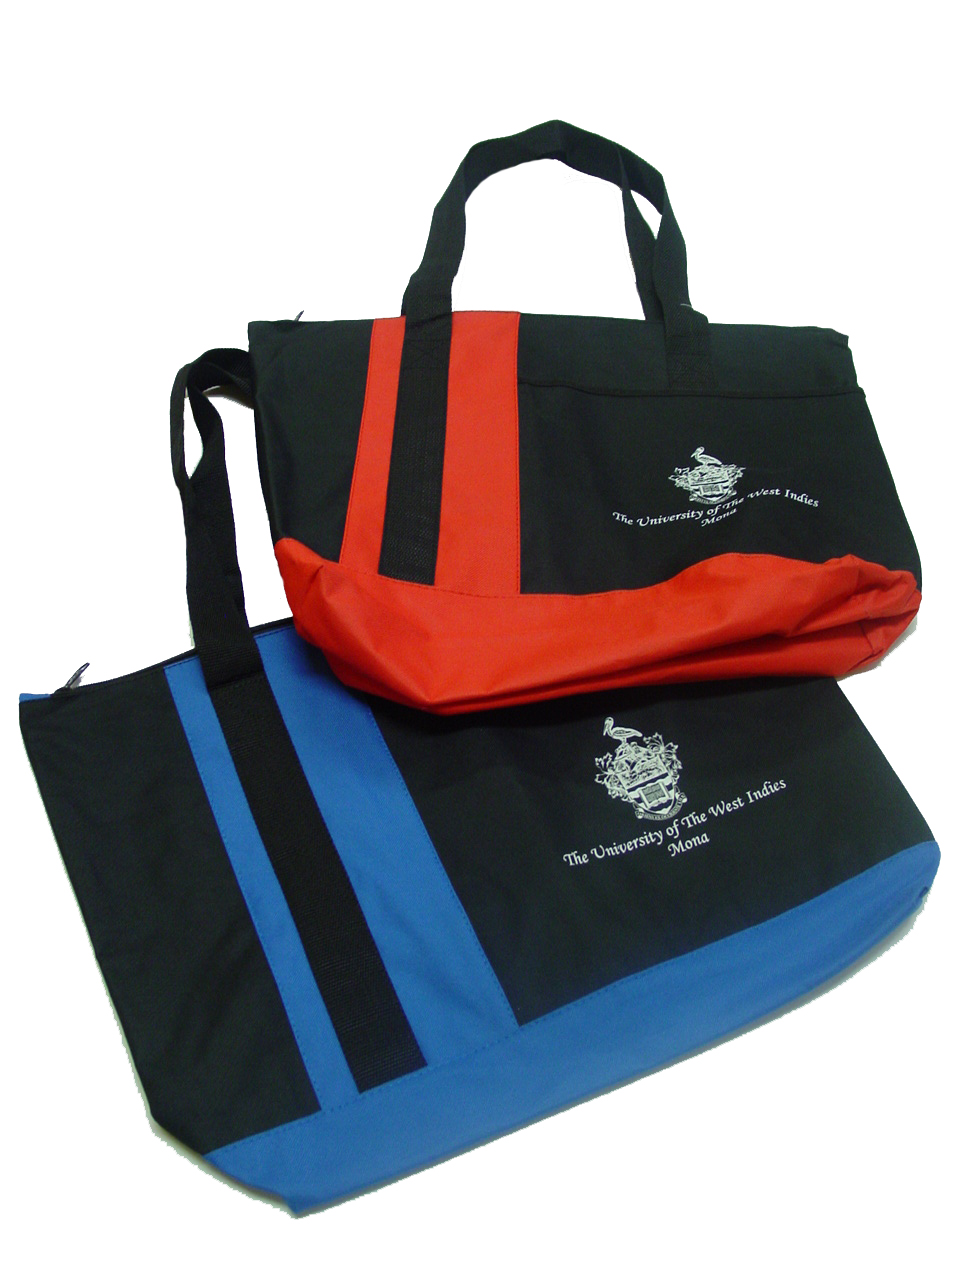 UWI TRI BAND TOTE BAG